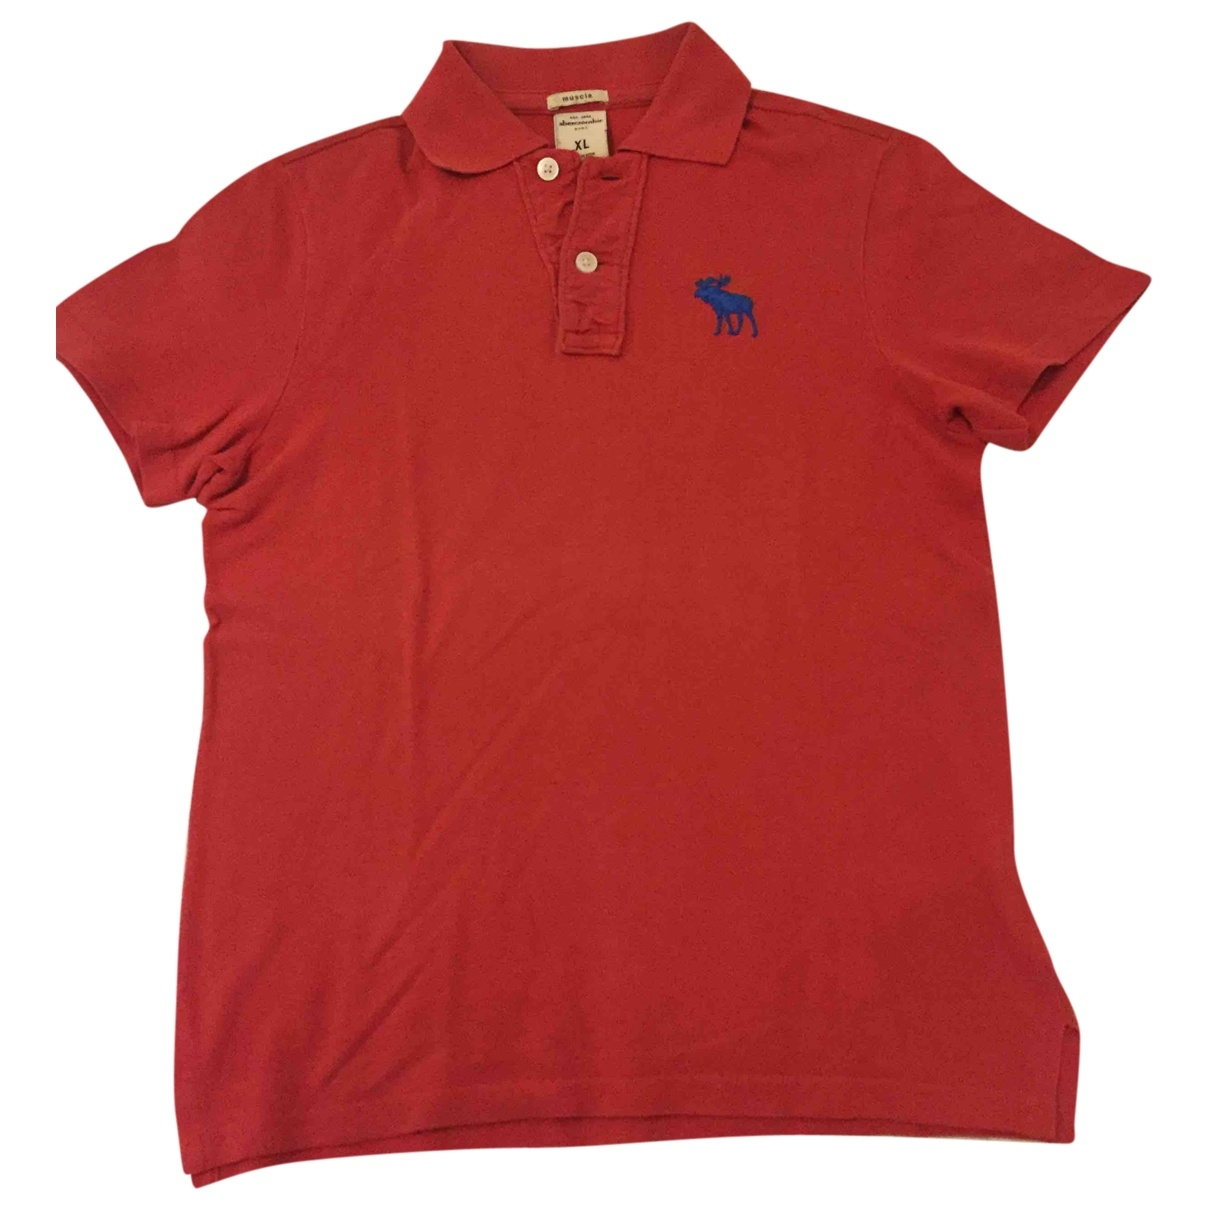 Abercrombie & Fitch \N Red Cotton  top for Kids 12 years - XS UK